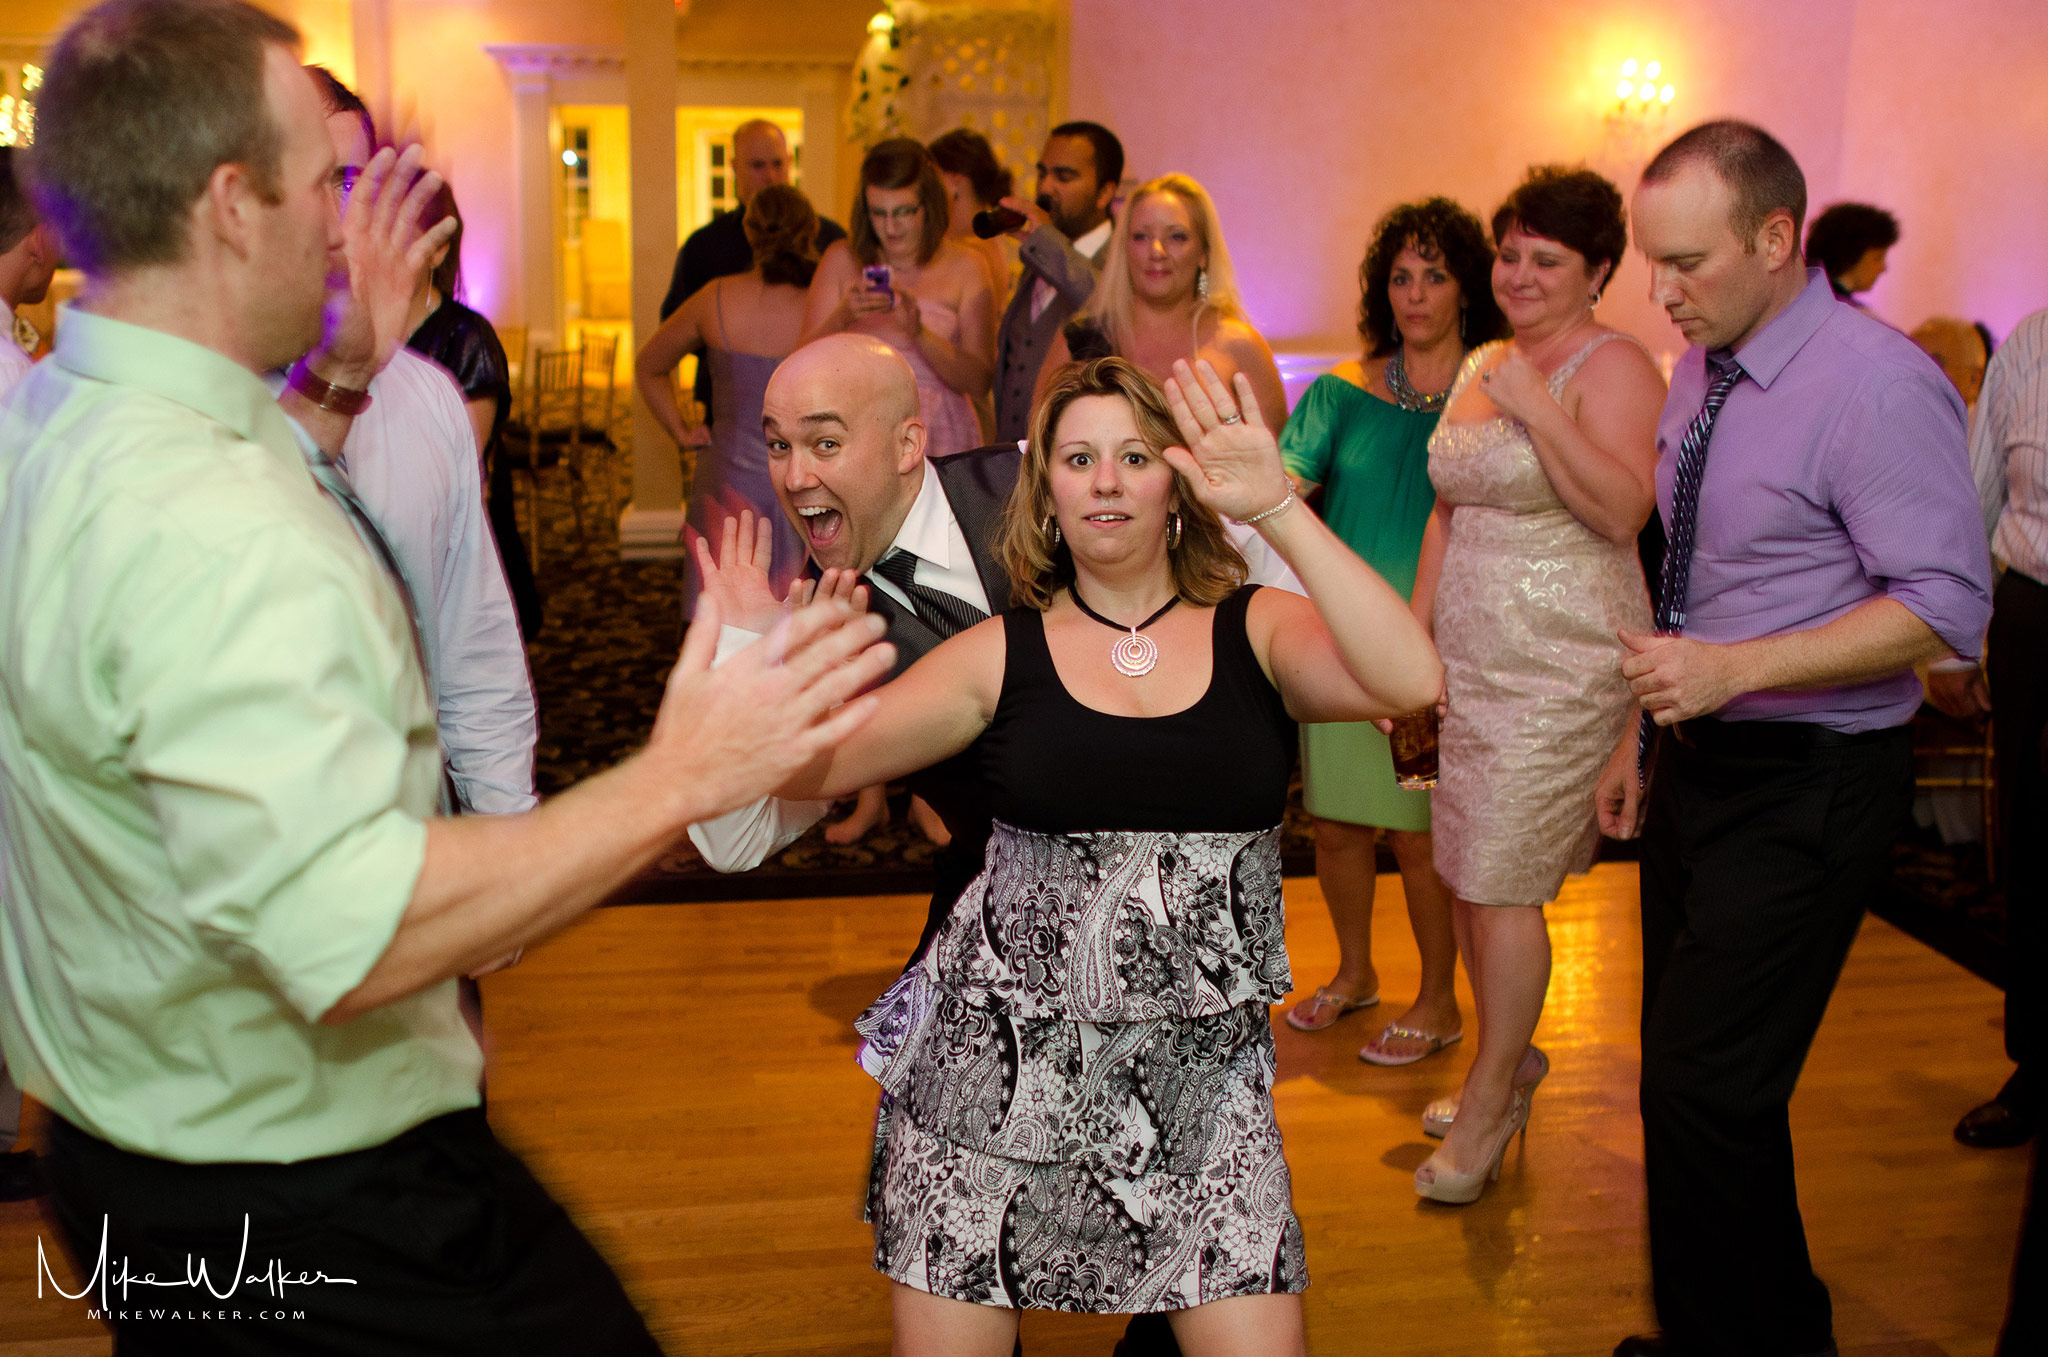 Couple dancing at a wedding. Wedding photography by Mike Walker.